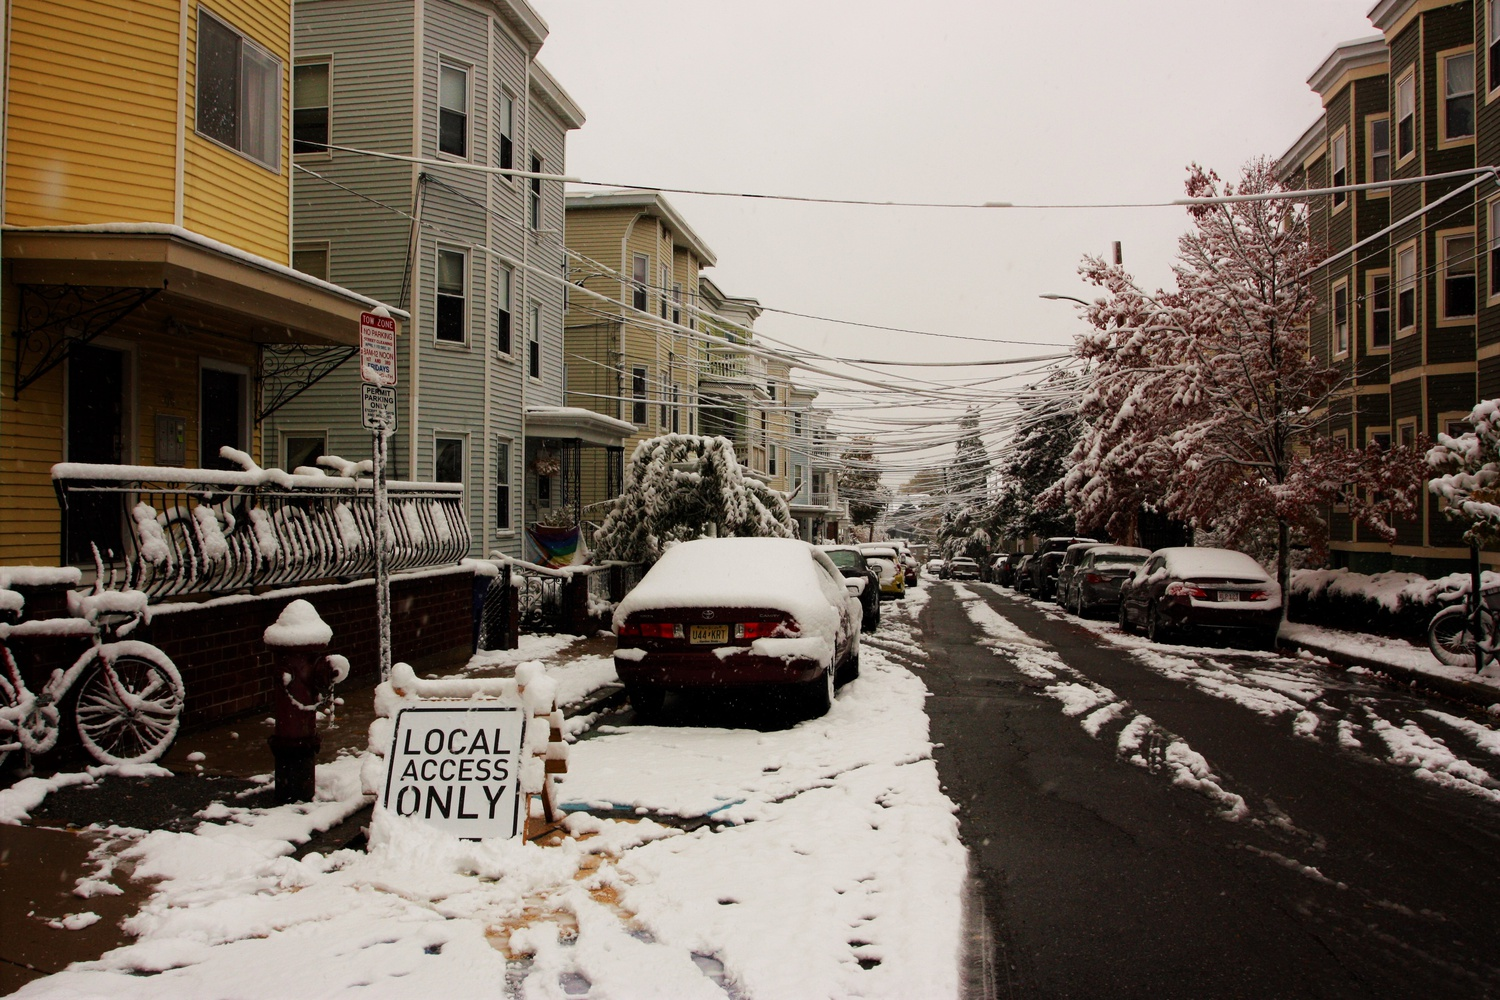 An October snow blankets Somerville, Mass., where many Harvard students have settled for the fall semester.